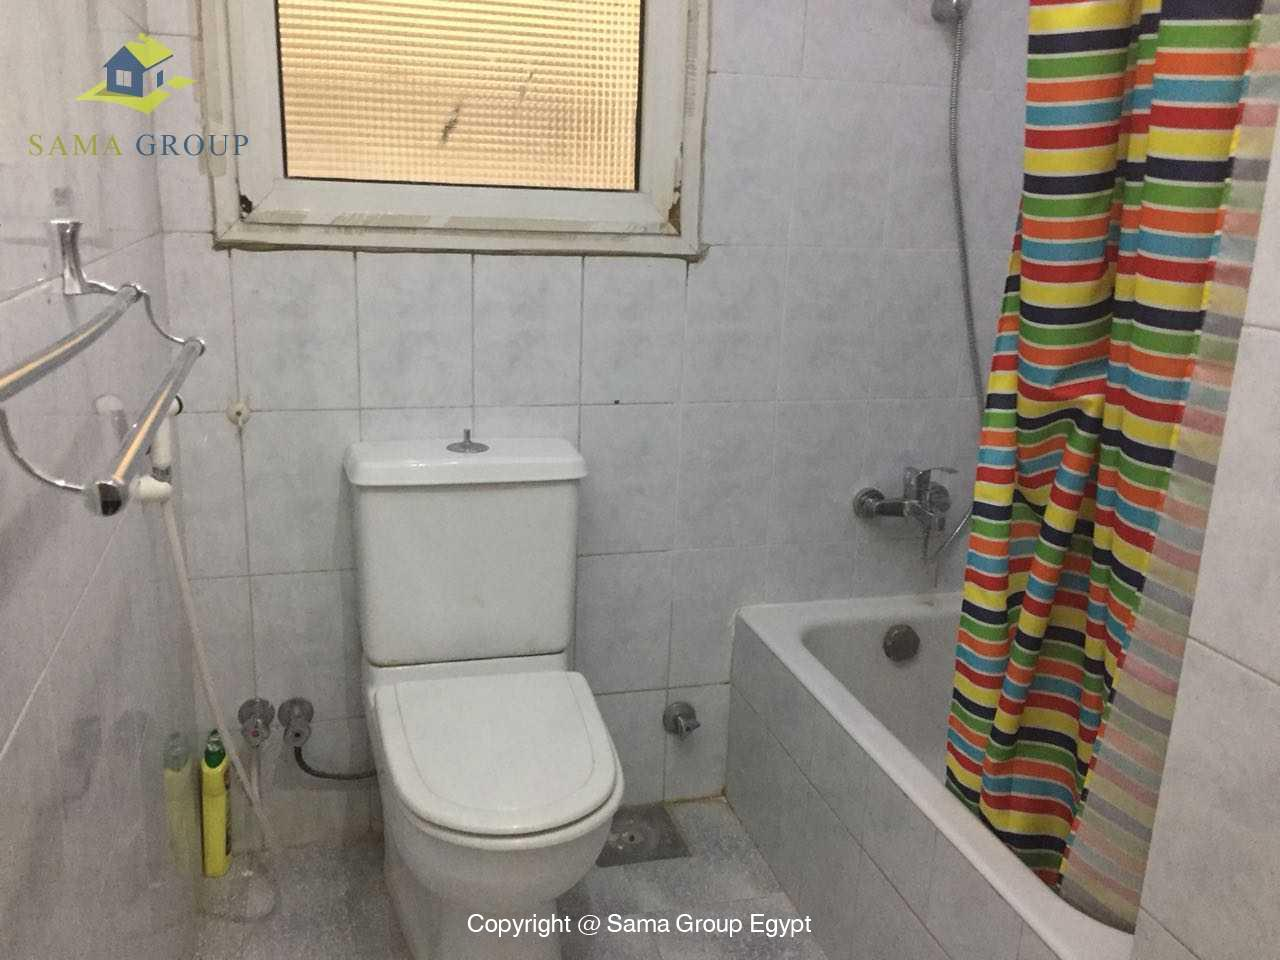 Furnished Apartment For Rent In Maadi,Furnished,Apartment NO #5